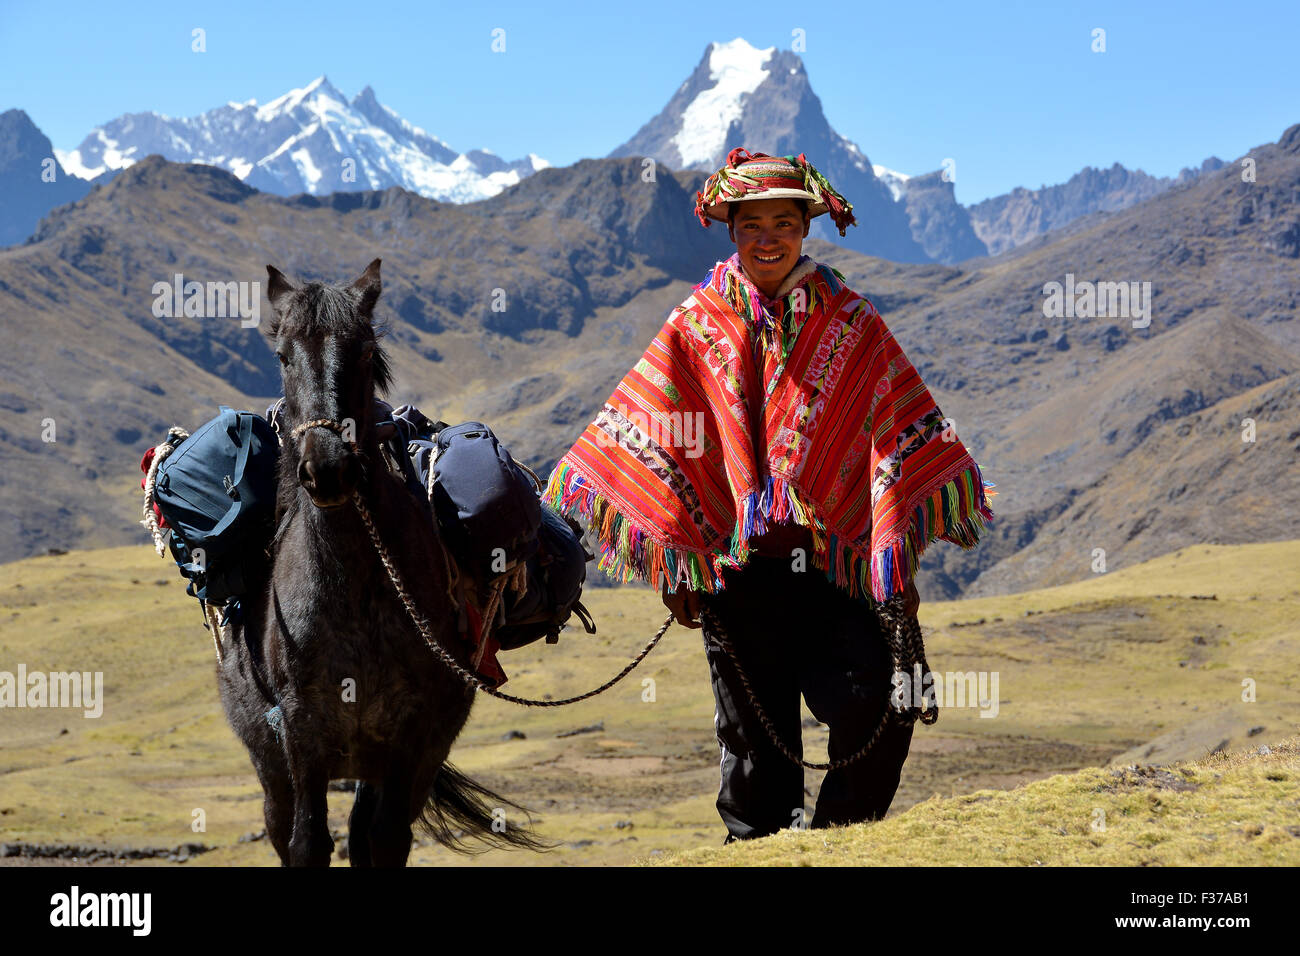 Indio mountain guide with colorful poncho and horse, in the mountains, Andes, Cusco Province, Peru - Stock Image